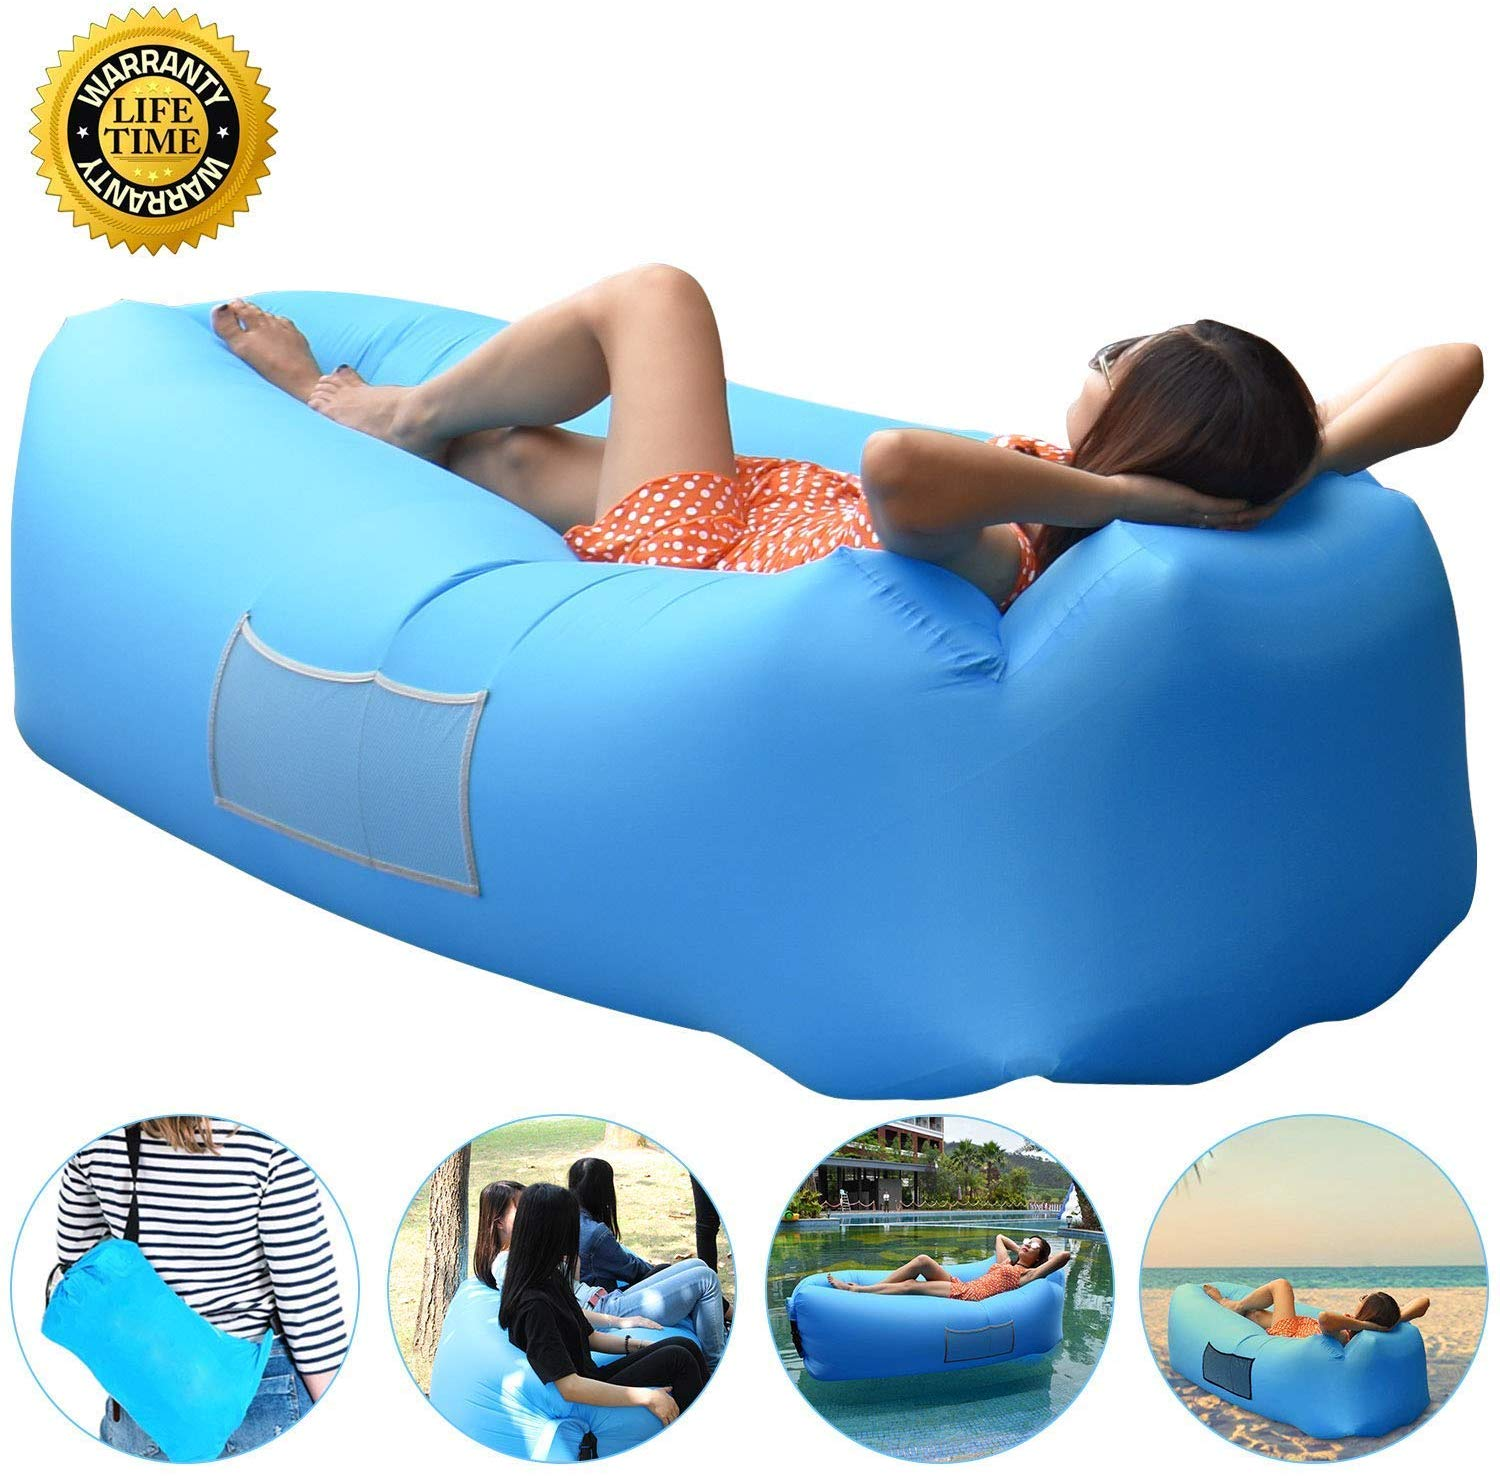 Aufblasen air lounger lidl Our Products